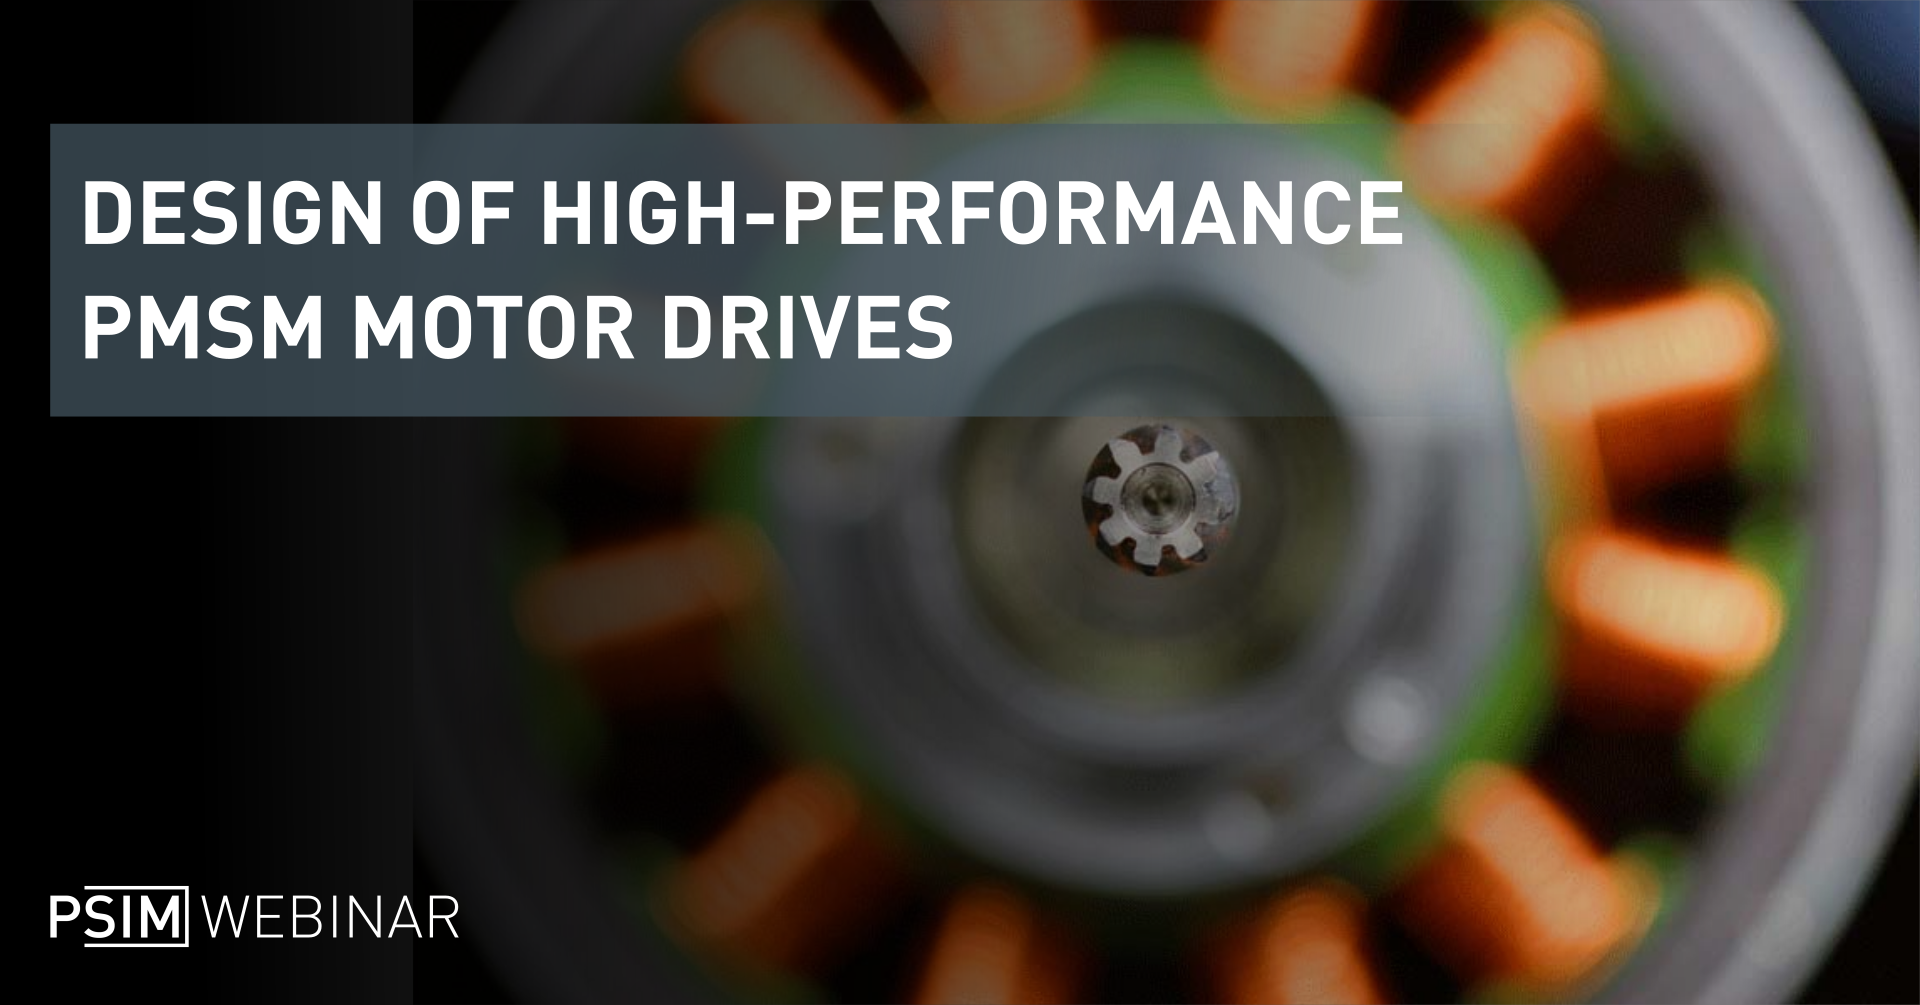 DESIGN OF HIGH-PERFORMANCE PMSM MOTOR DRIVES